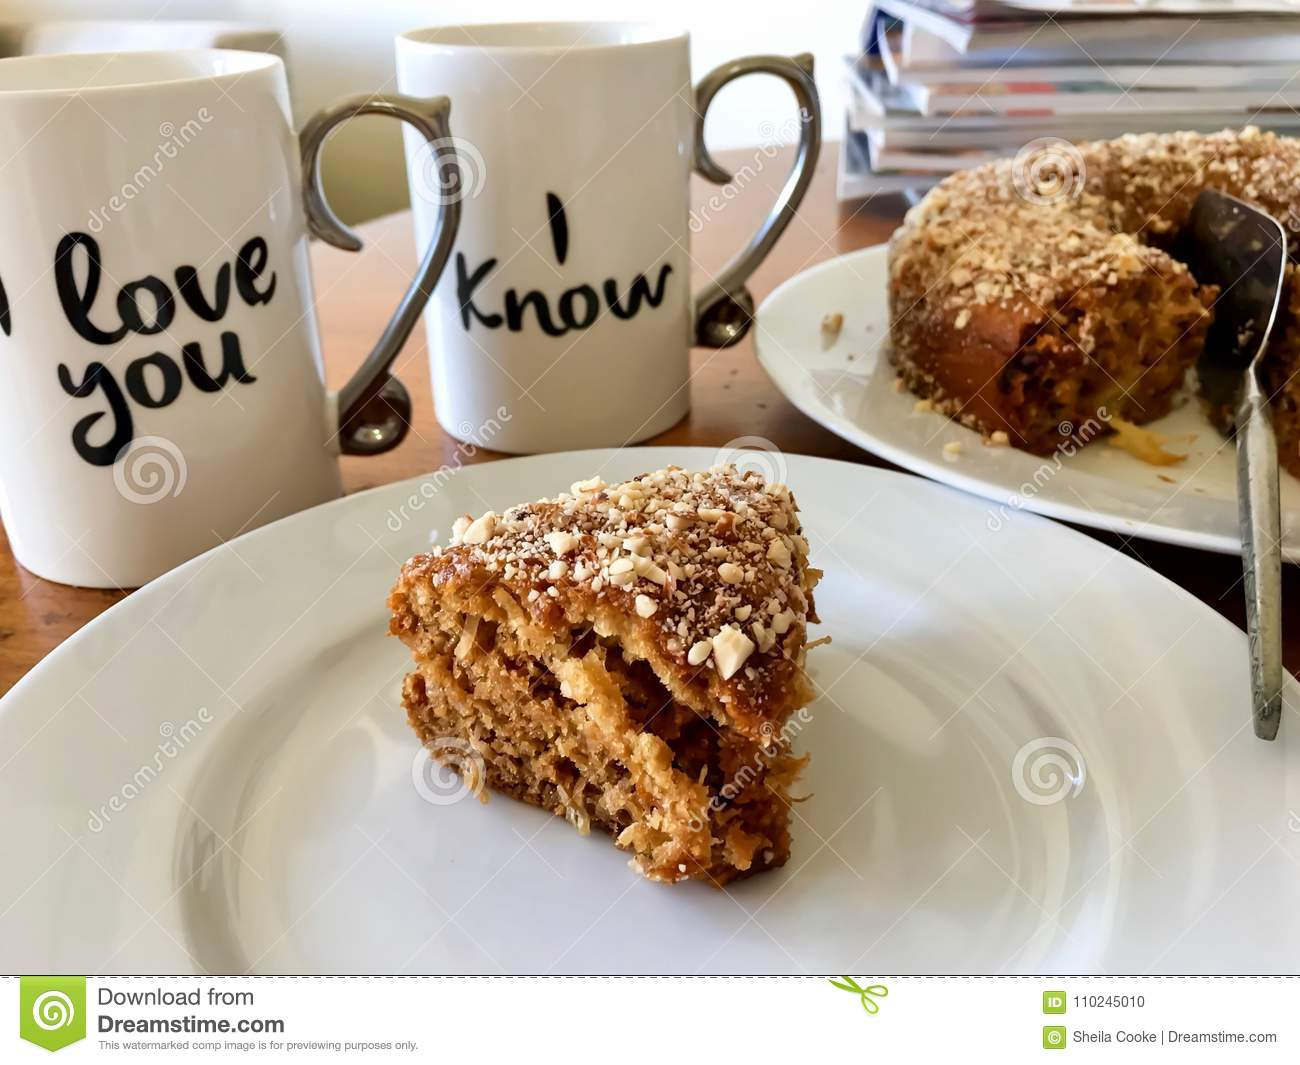 Coffee mugs with love messages beside homemade cake